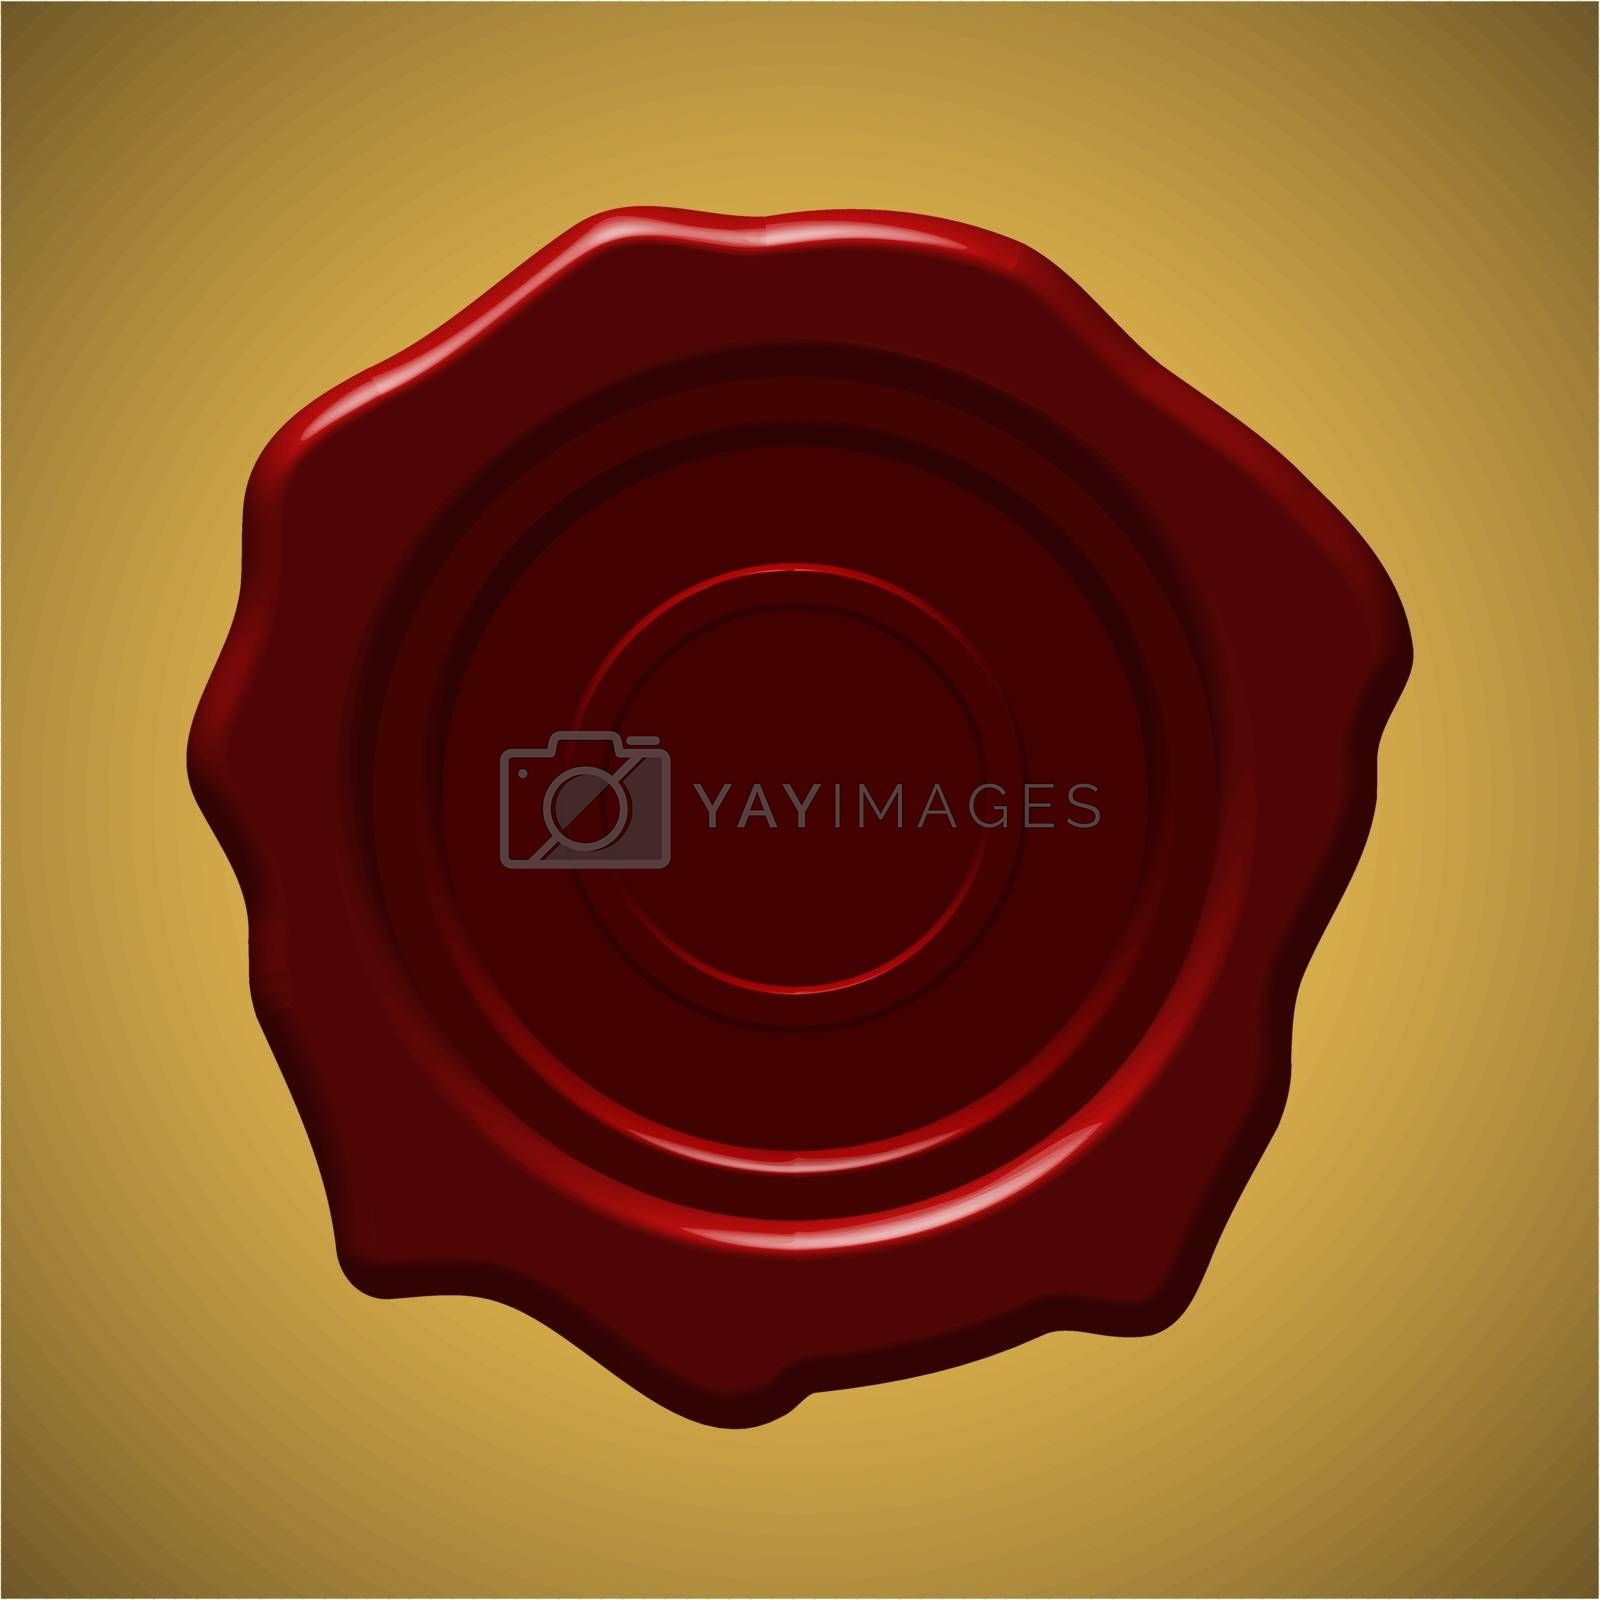 Red wax seal on gold gradient background, vector illustration